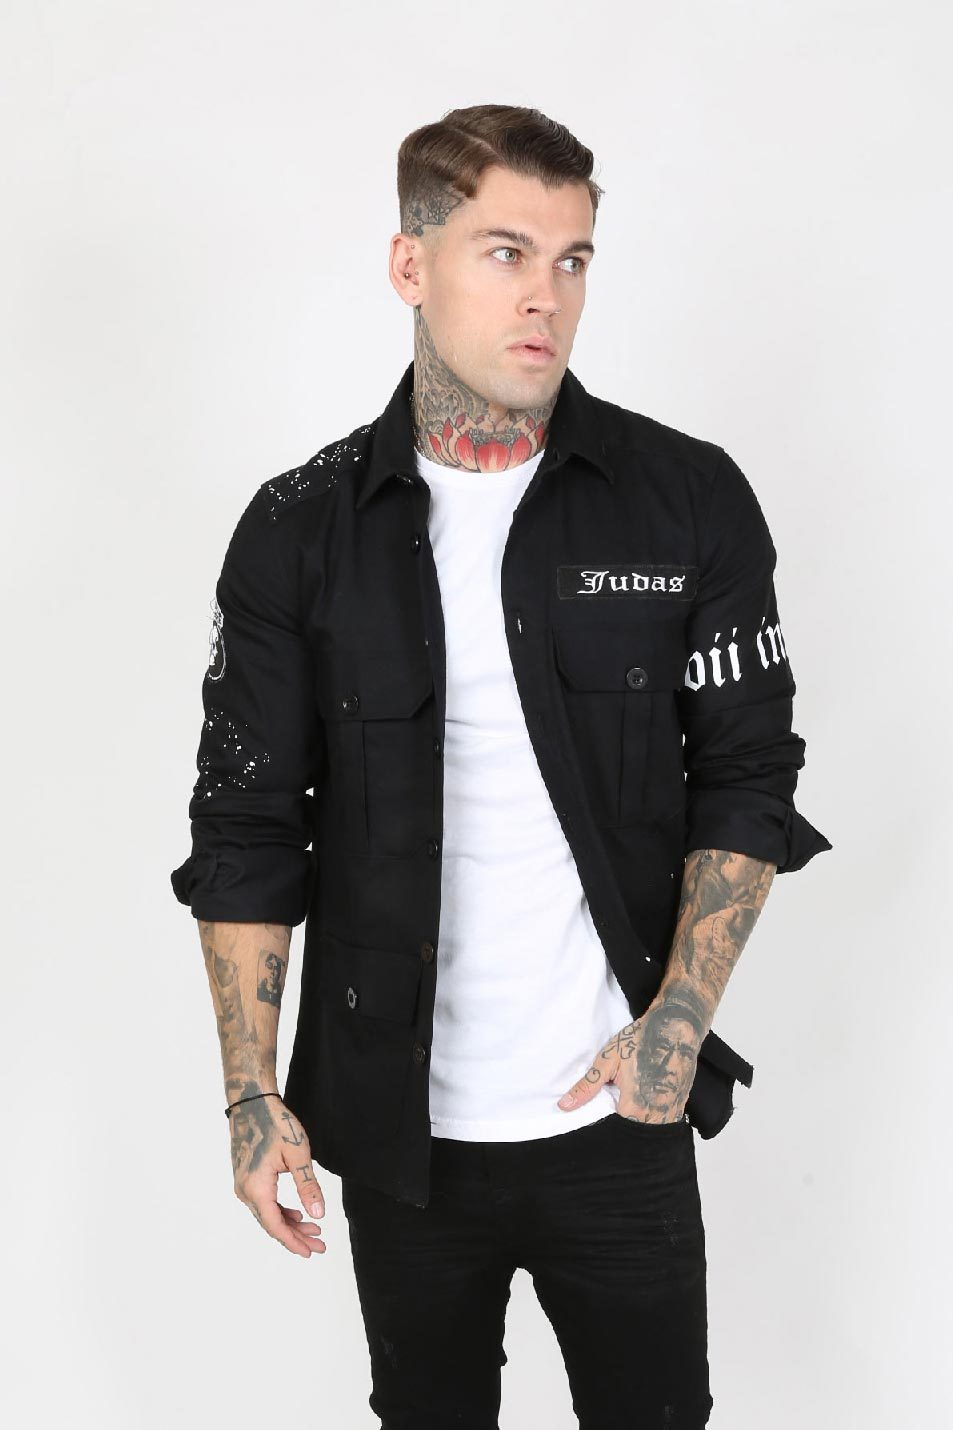 Army Paint Splatter Logo Men's Overshirt - Black - Judas Sinned Clothing